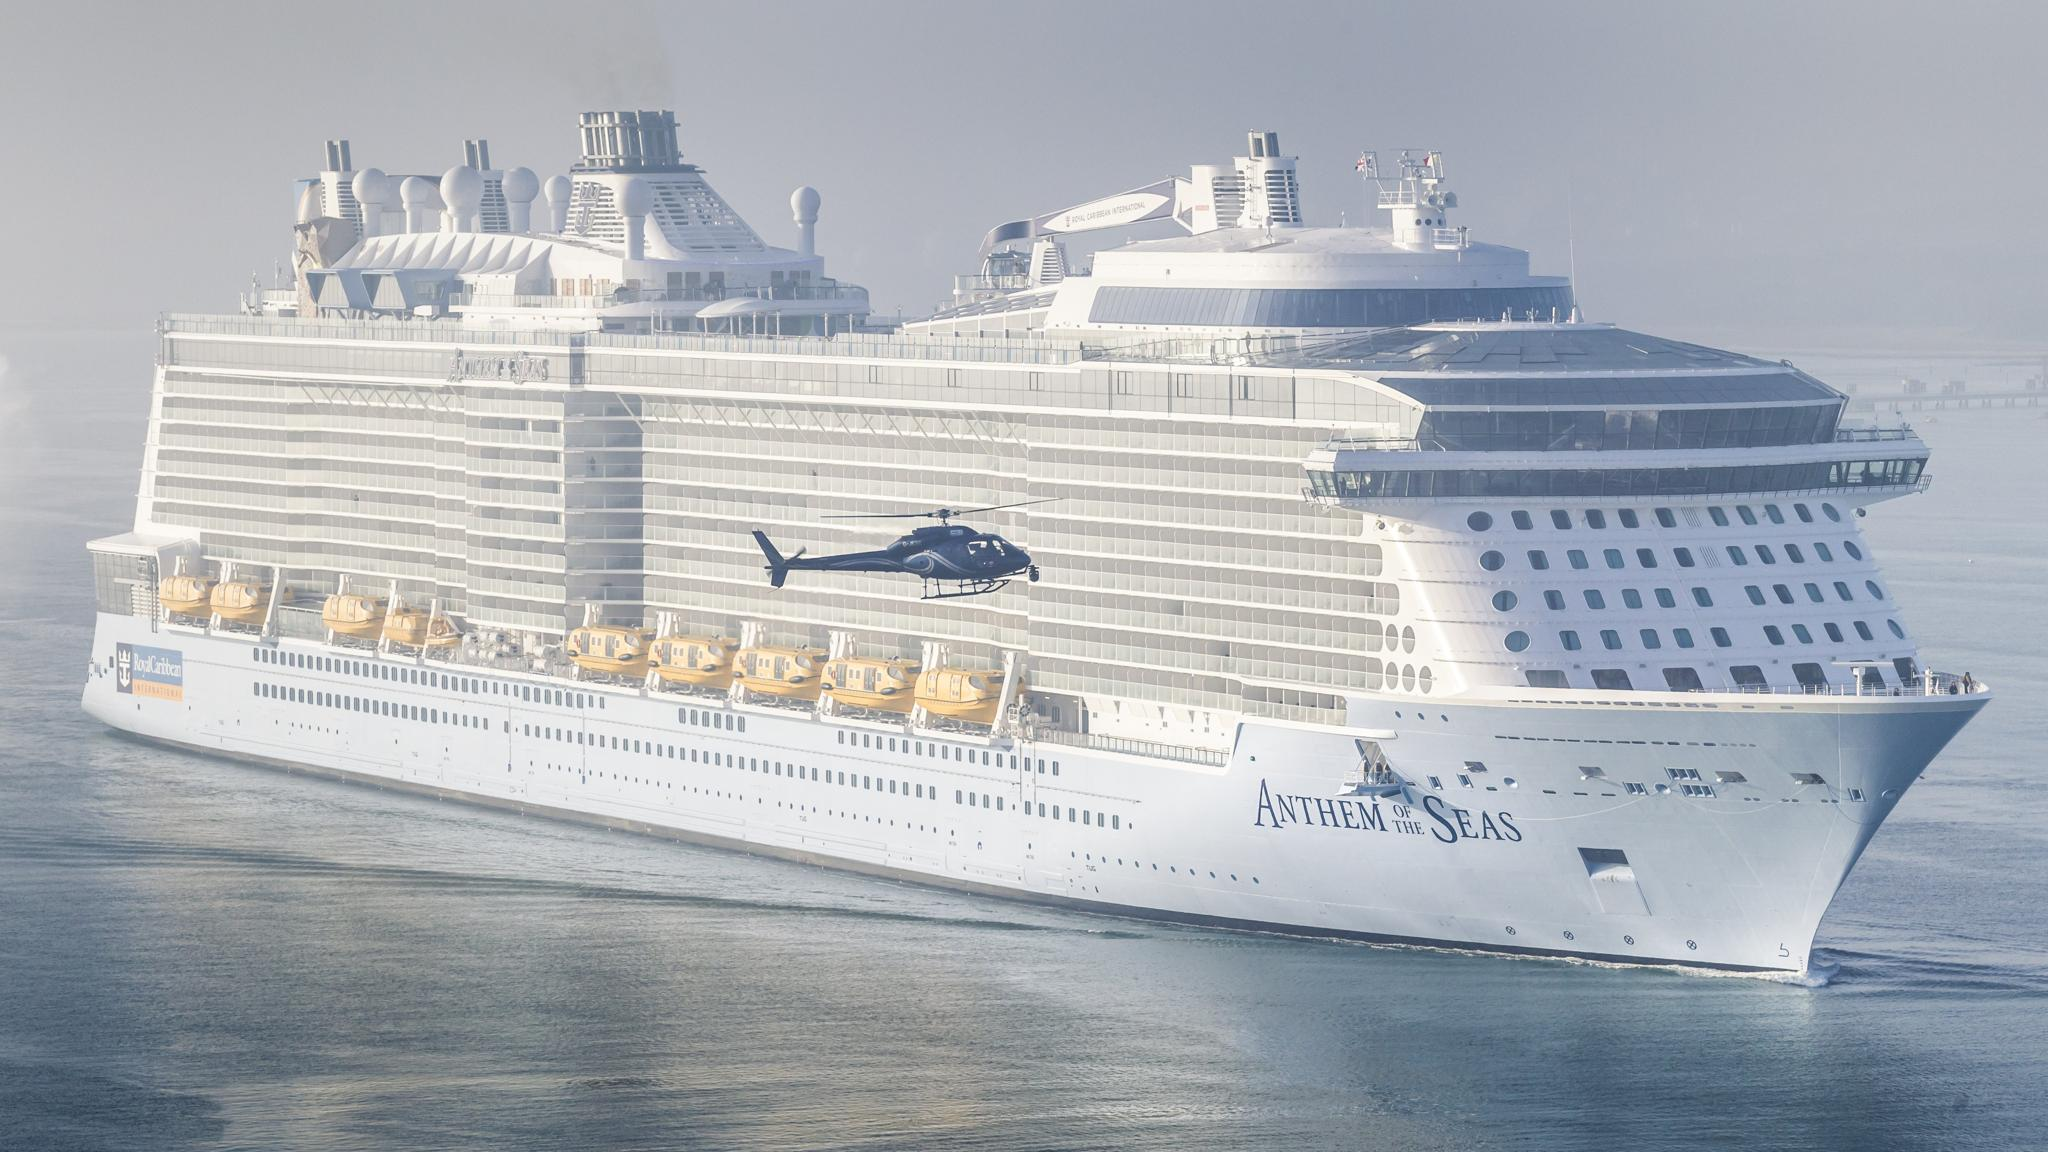 Lucy Kellaway Sets Sail On Giant Cruise Ship Anthem Of The Seas